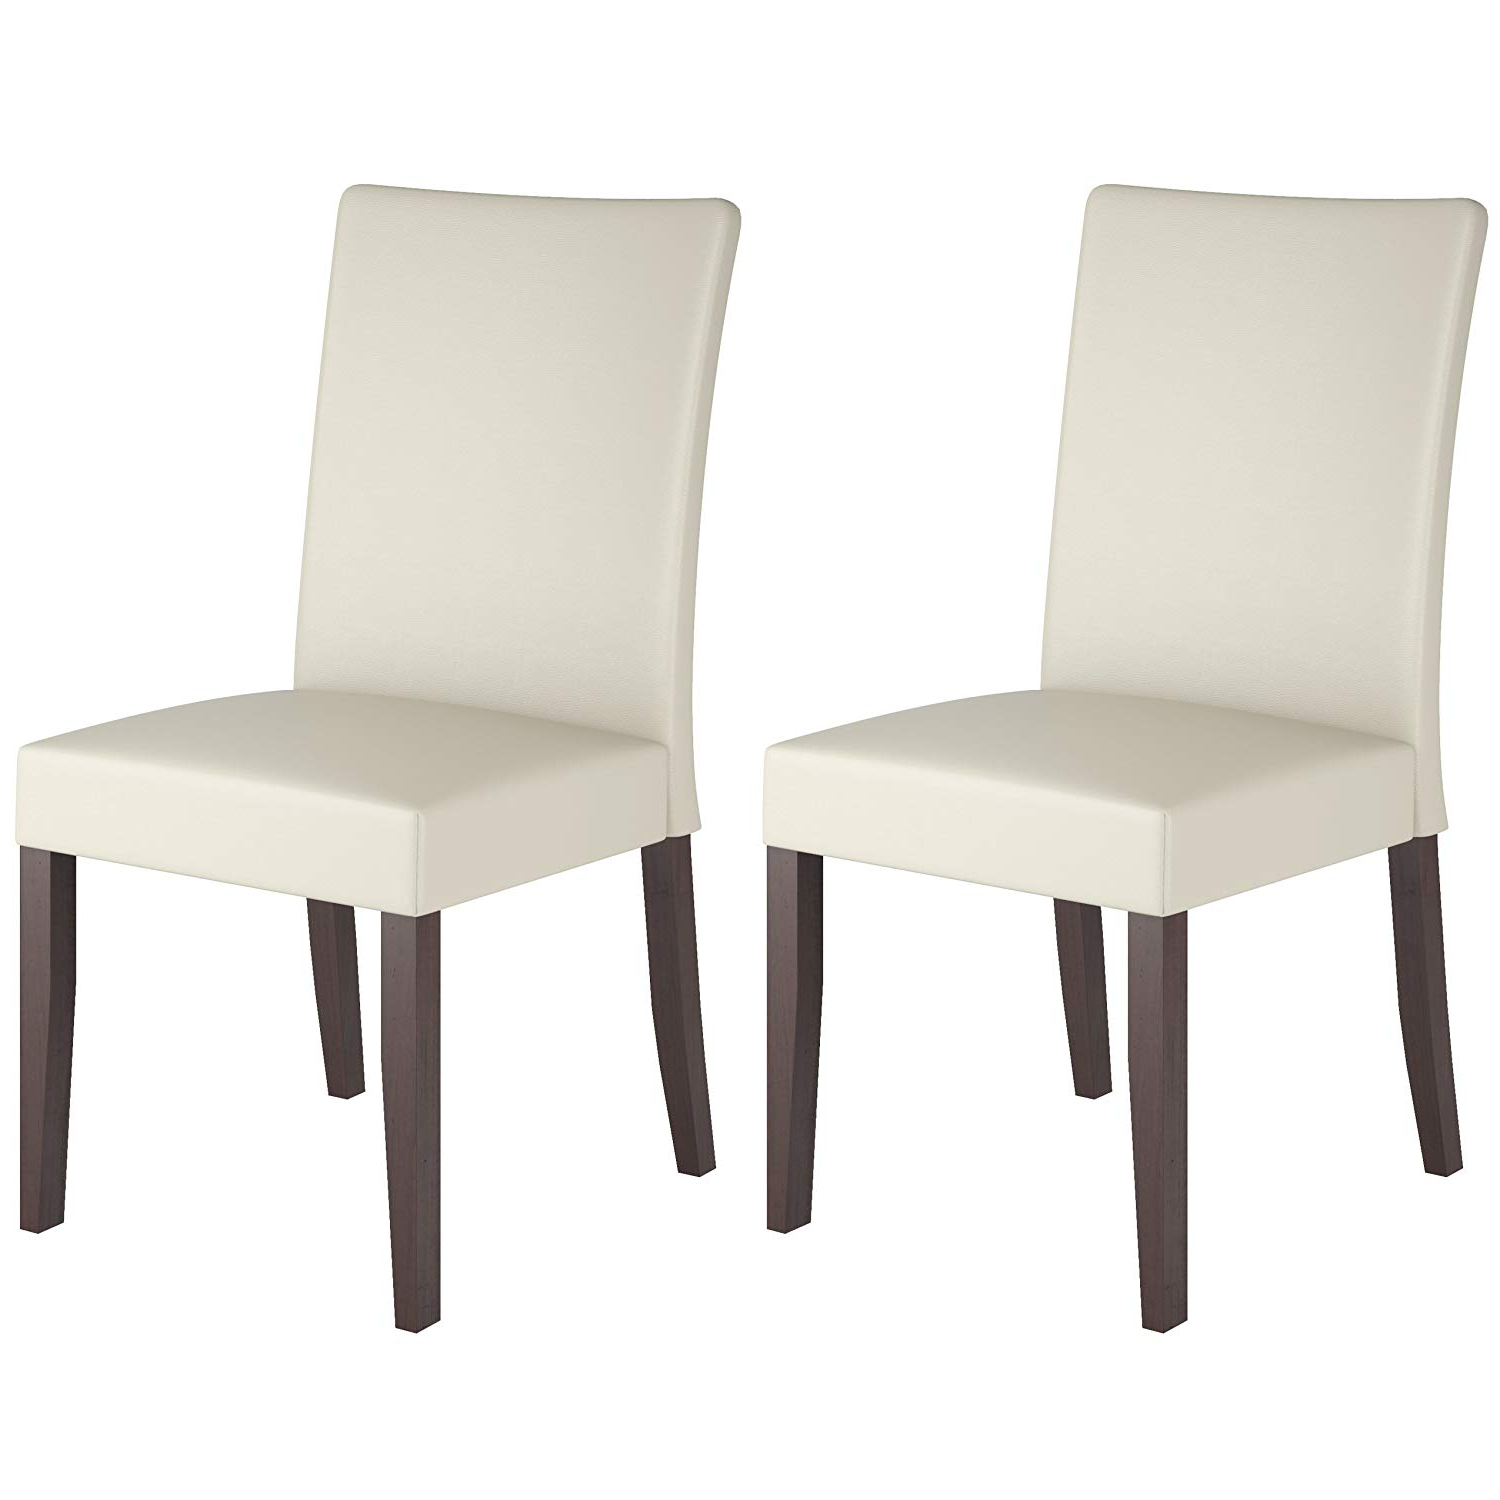 Atwood Transitional Square Dining Tables For Most Current Corliving Atwood Dining Chairs, Small, Cream (View 19 of 25)